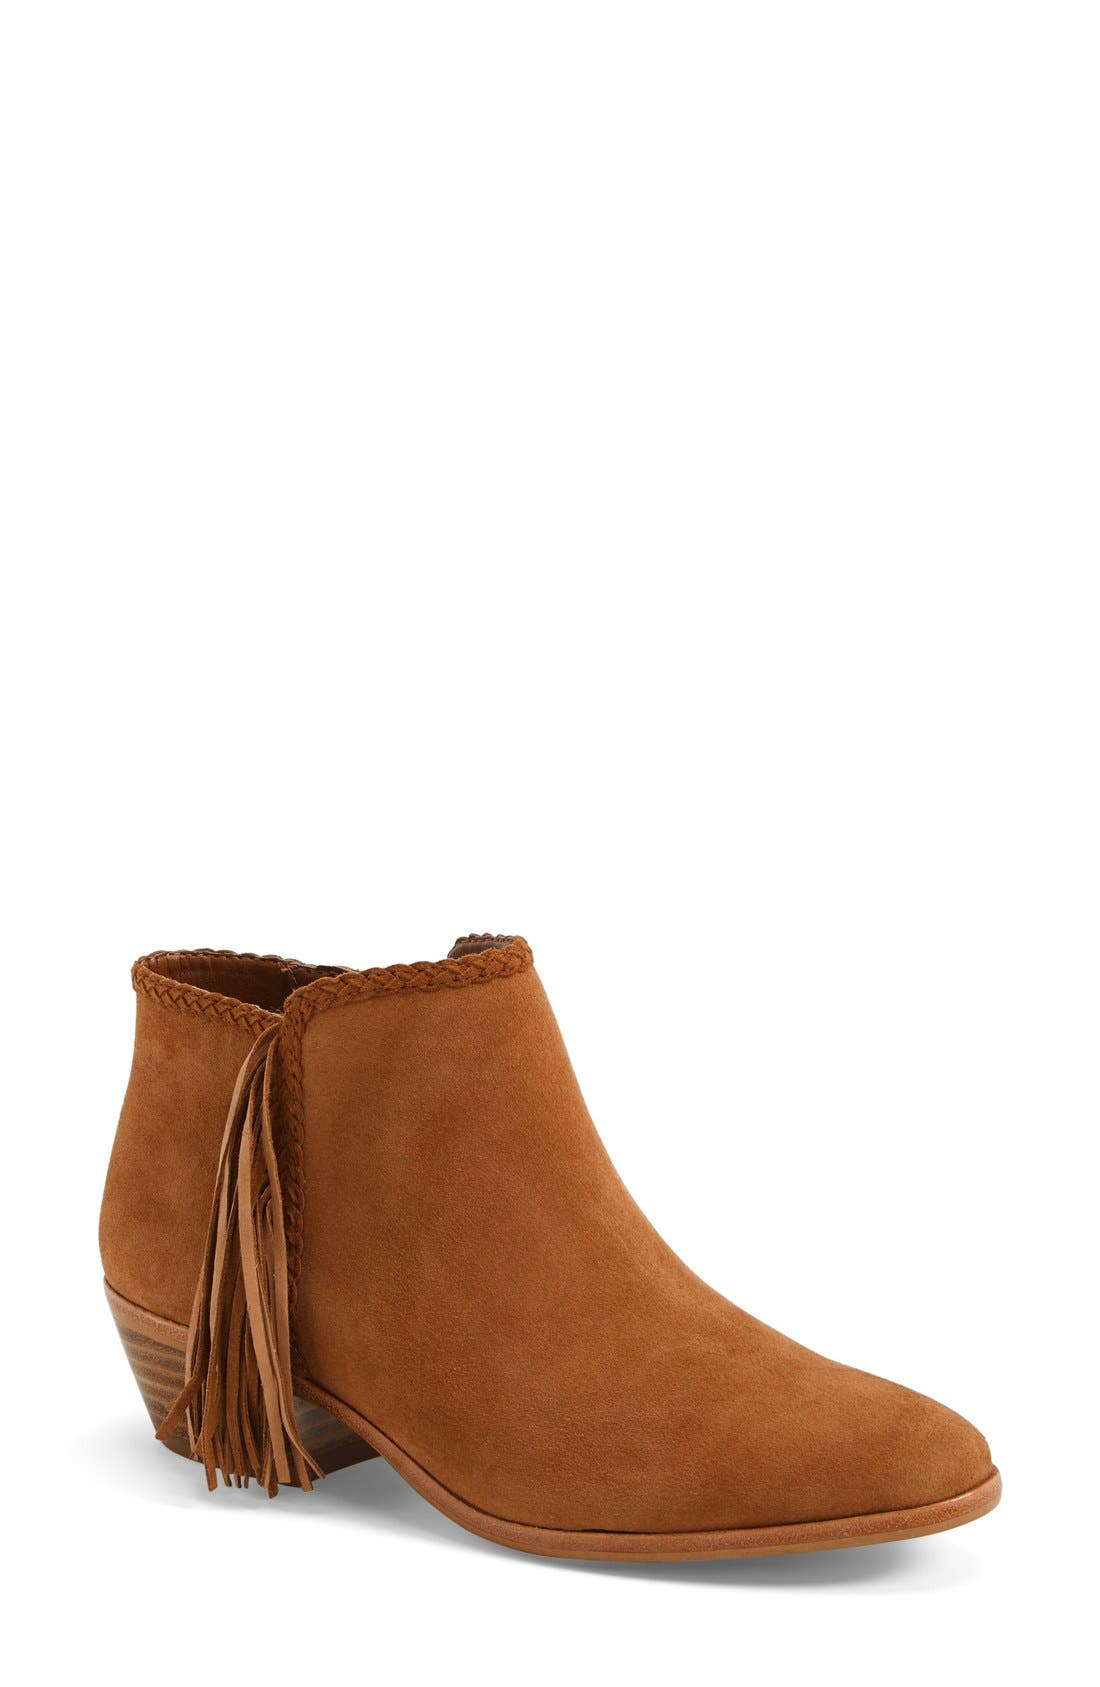 'Paige' Fringed Ankle Bootie,                         Main,                         color, Soft Saddle Suede